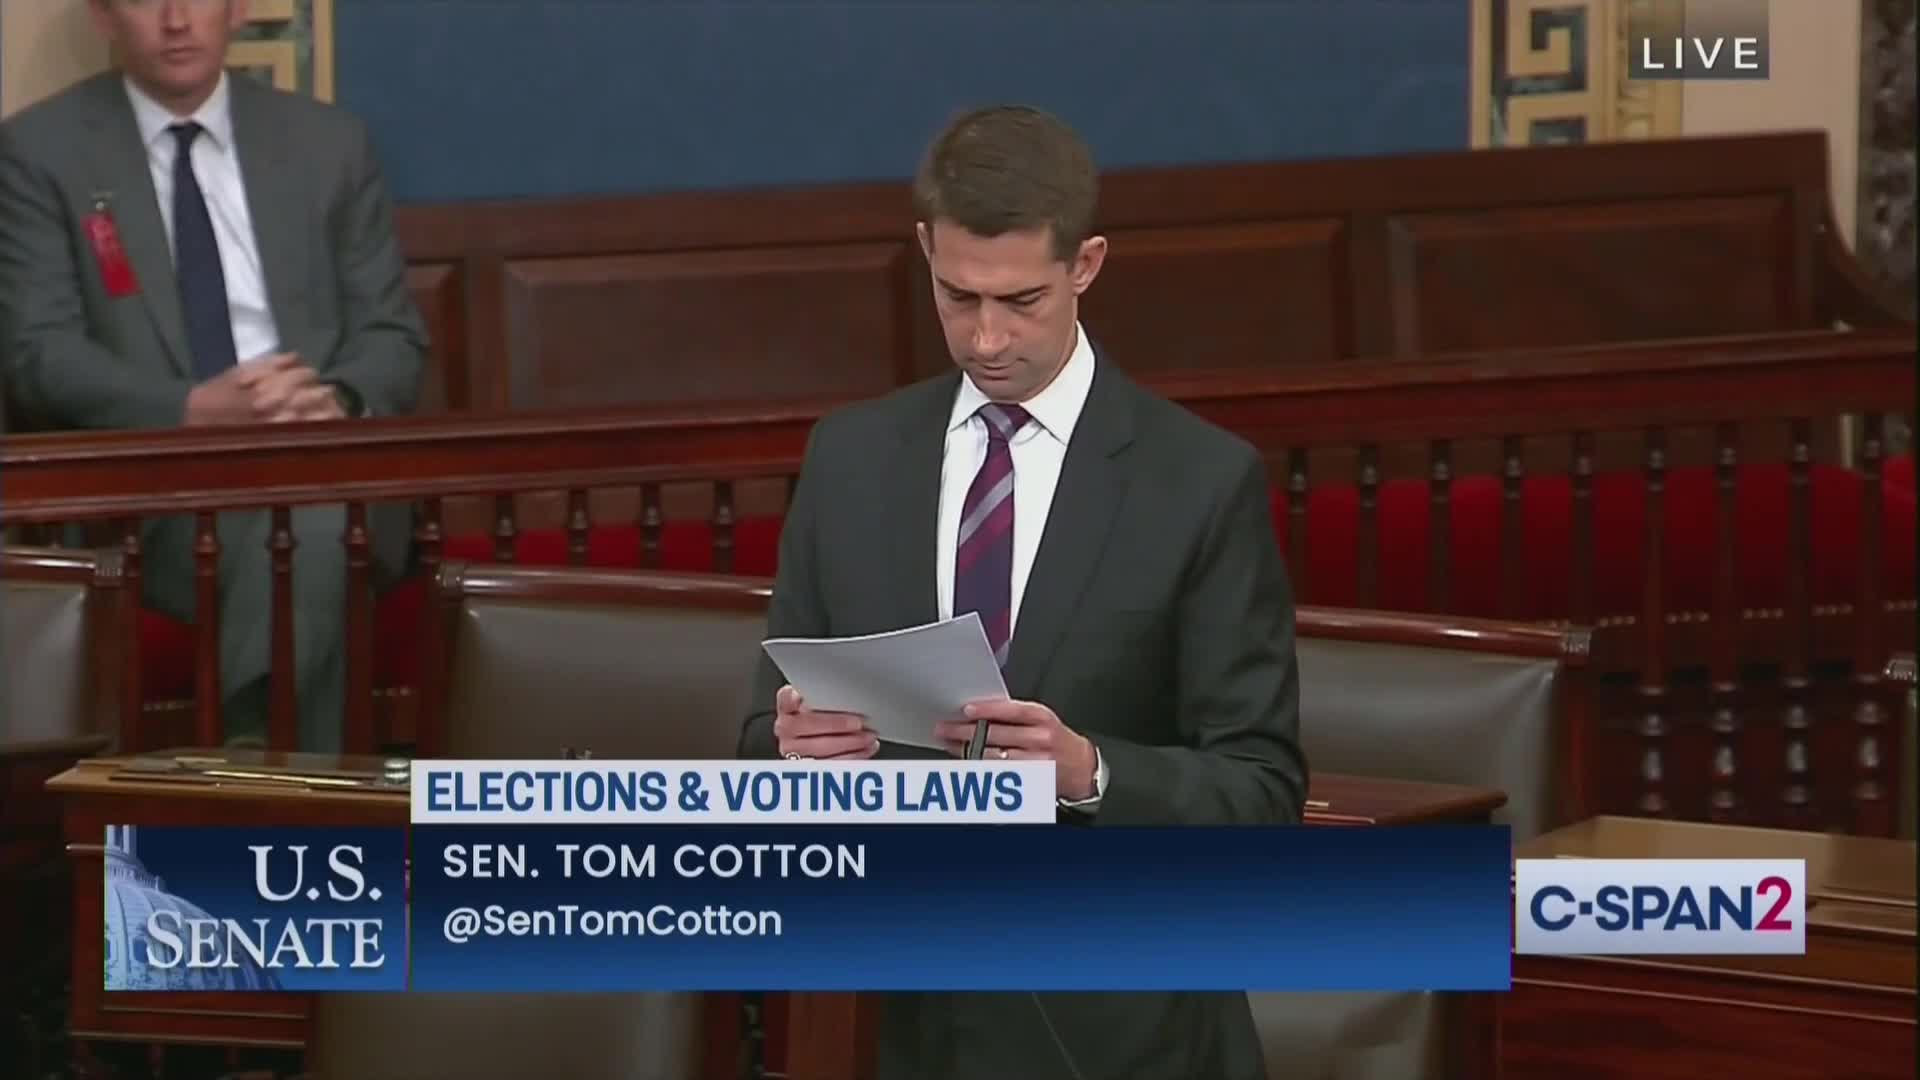 Tom Cotton Brings Receipts, DESTROYS Dems for Filibuster Hypocrisy